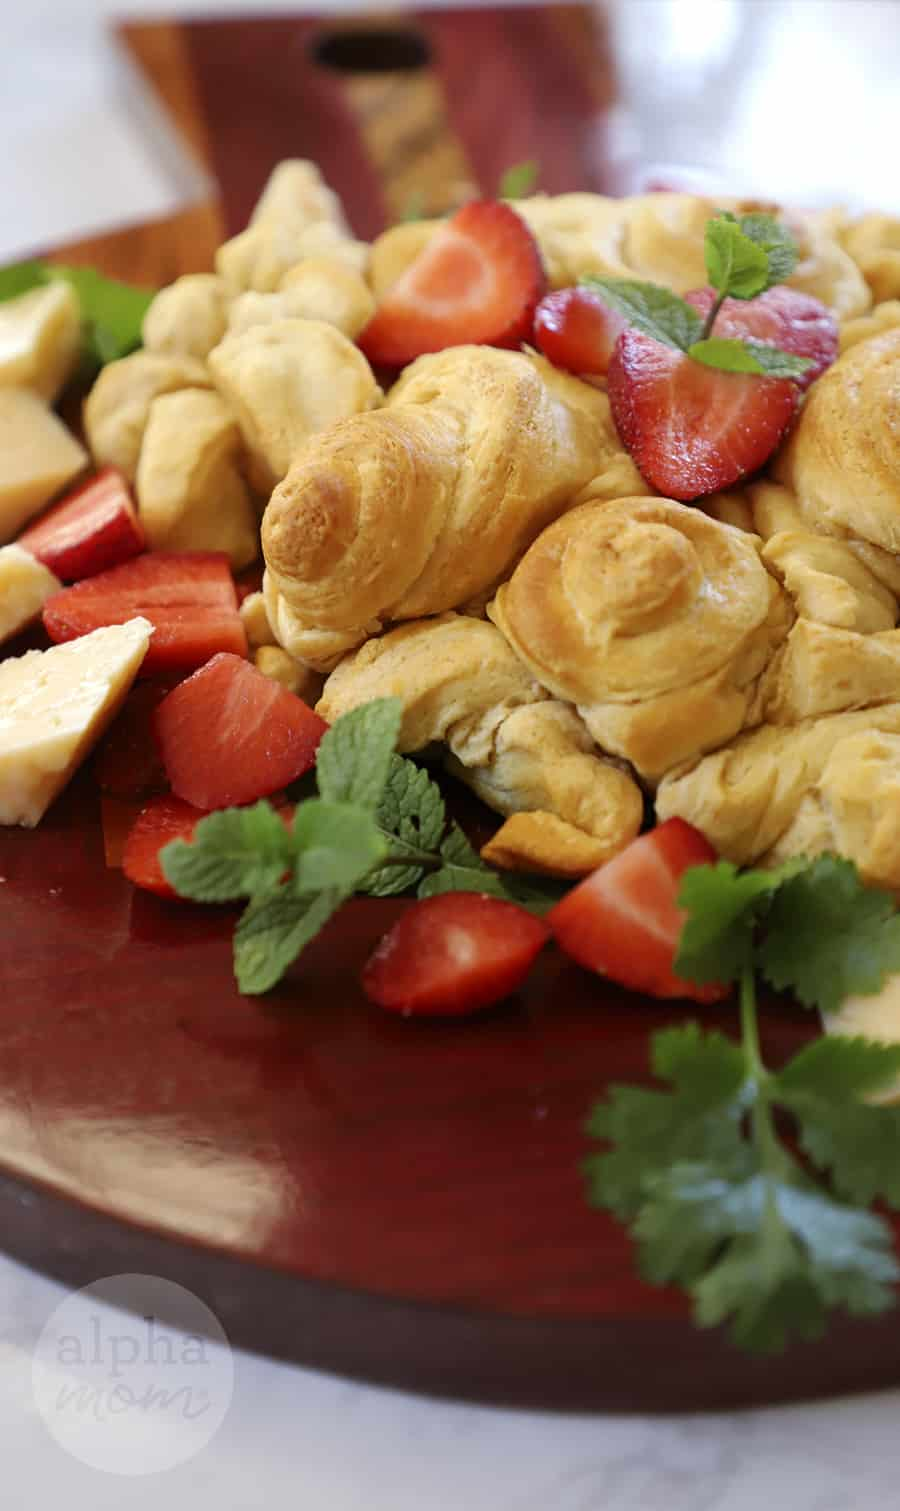 close-up photo of baked crescent rolls in the shape of flowers and cut strawberries